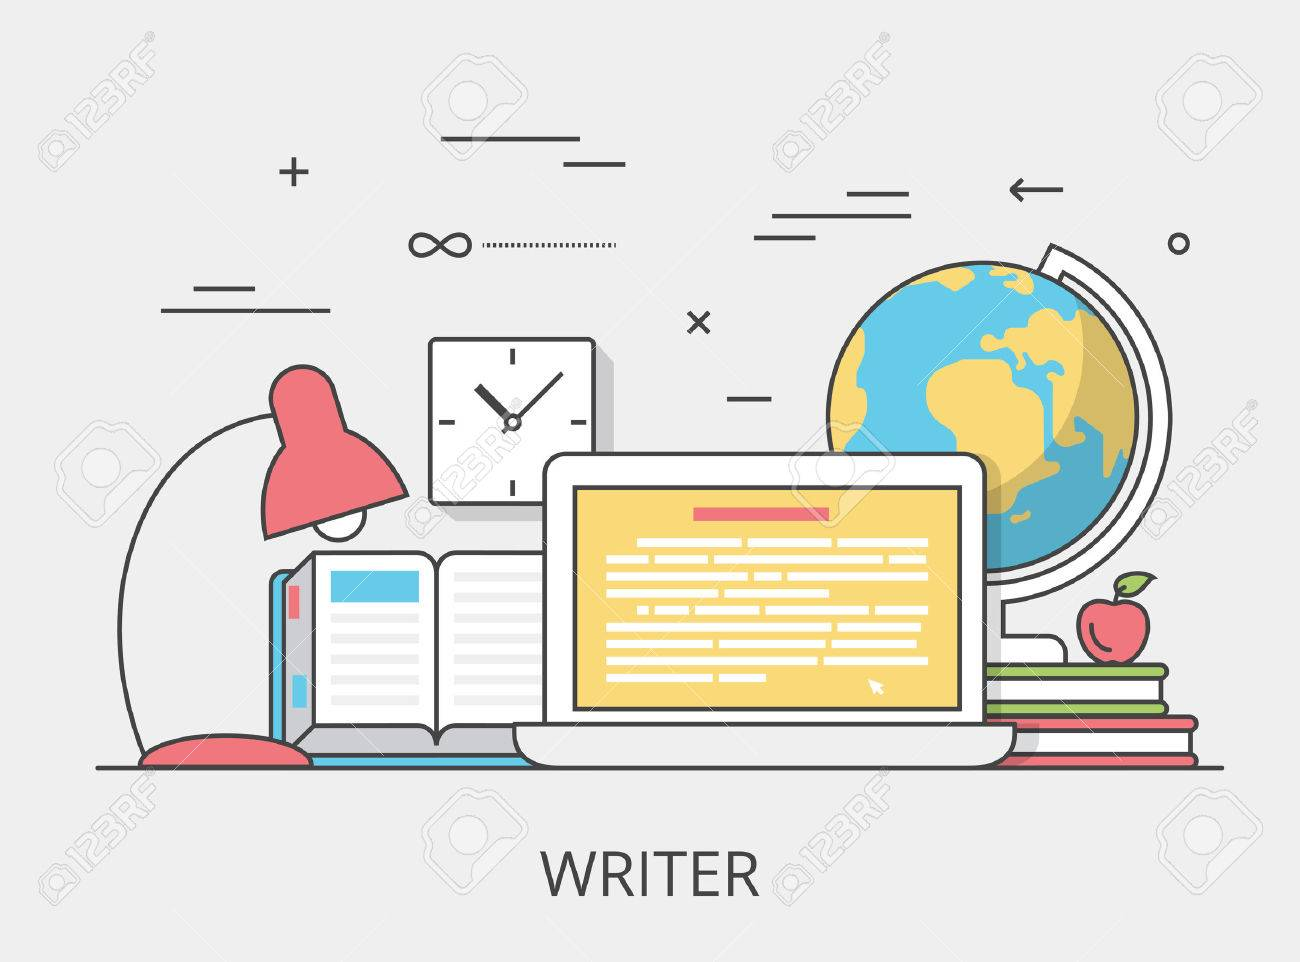 Linear Flat copywriting writer service website hero image vector illustration. Digital services tools and technology concept. Laptop, book, text editor software interface. Stock Vector - 64110471